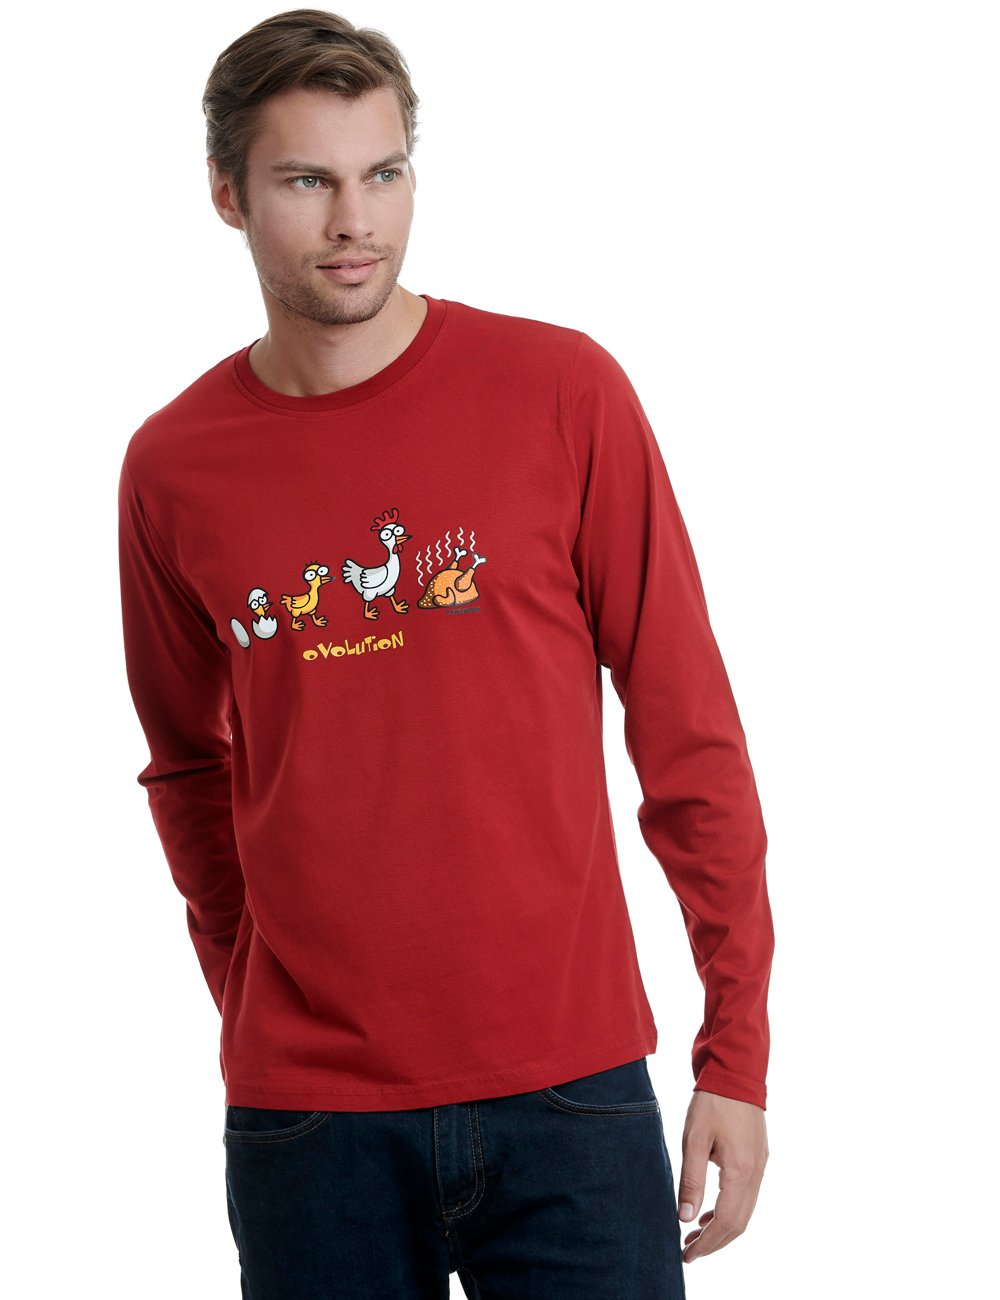 Zuring long sleeve kukuxumusu red